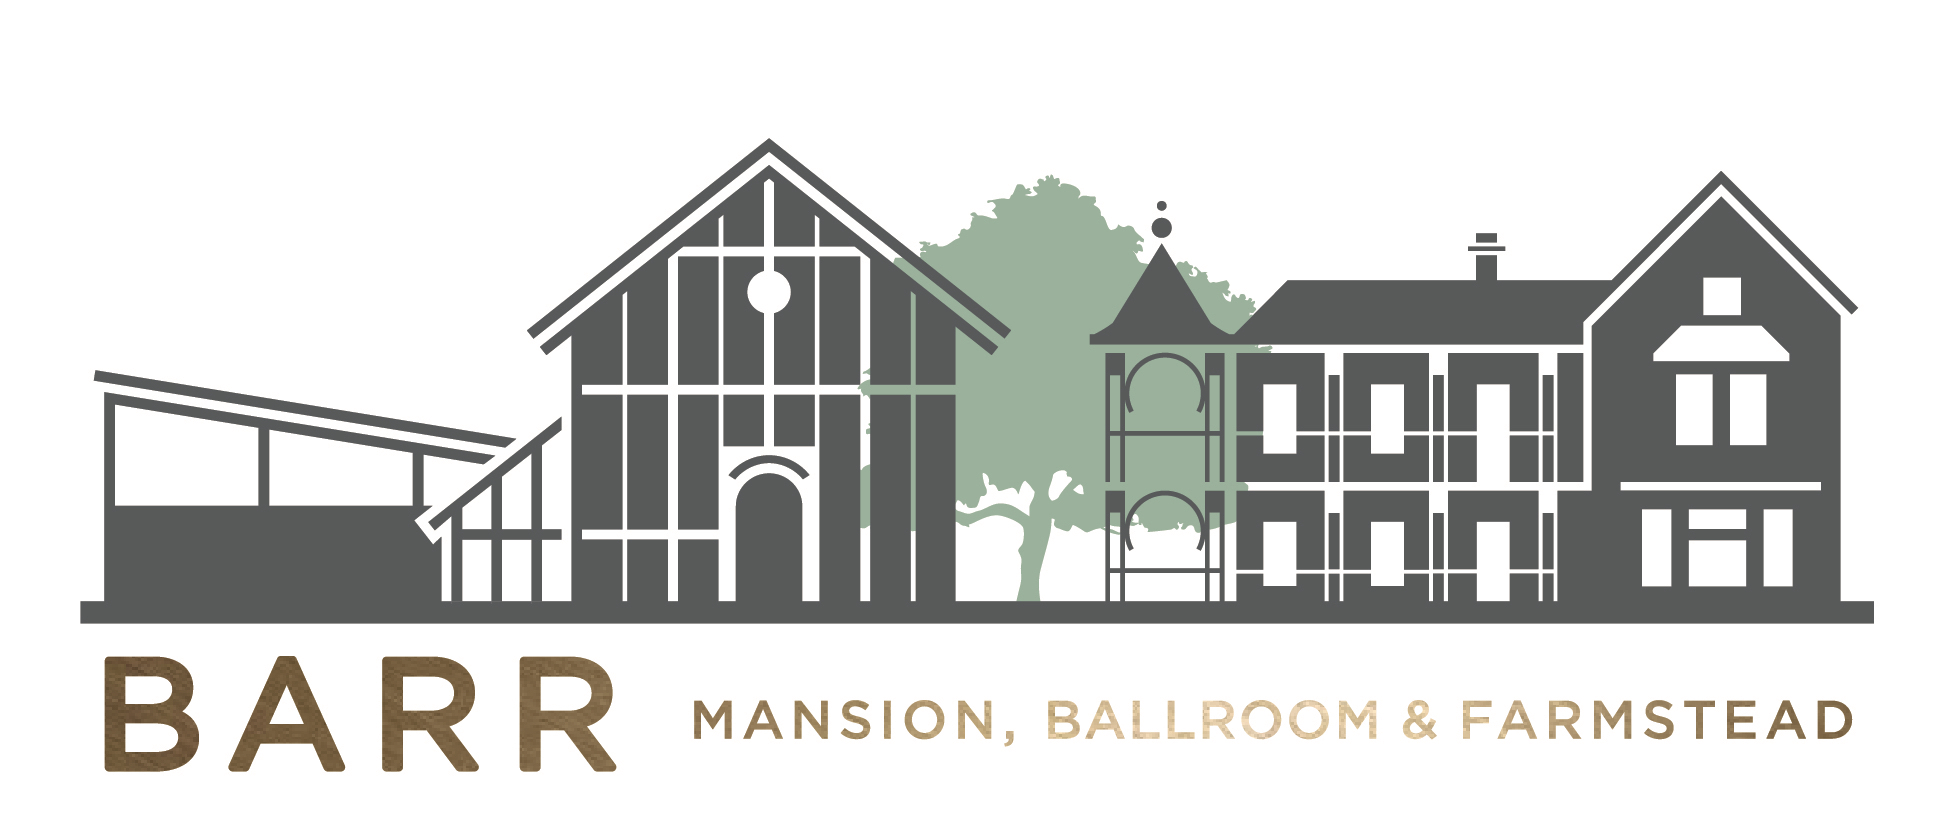 BARR - mansion, ballroom & farmstead Venues